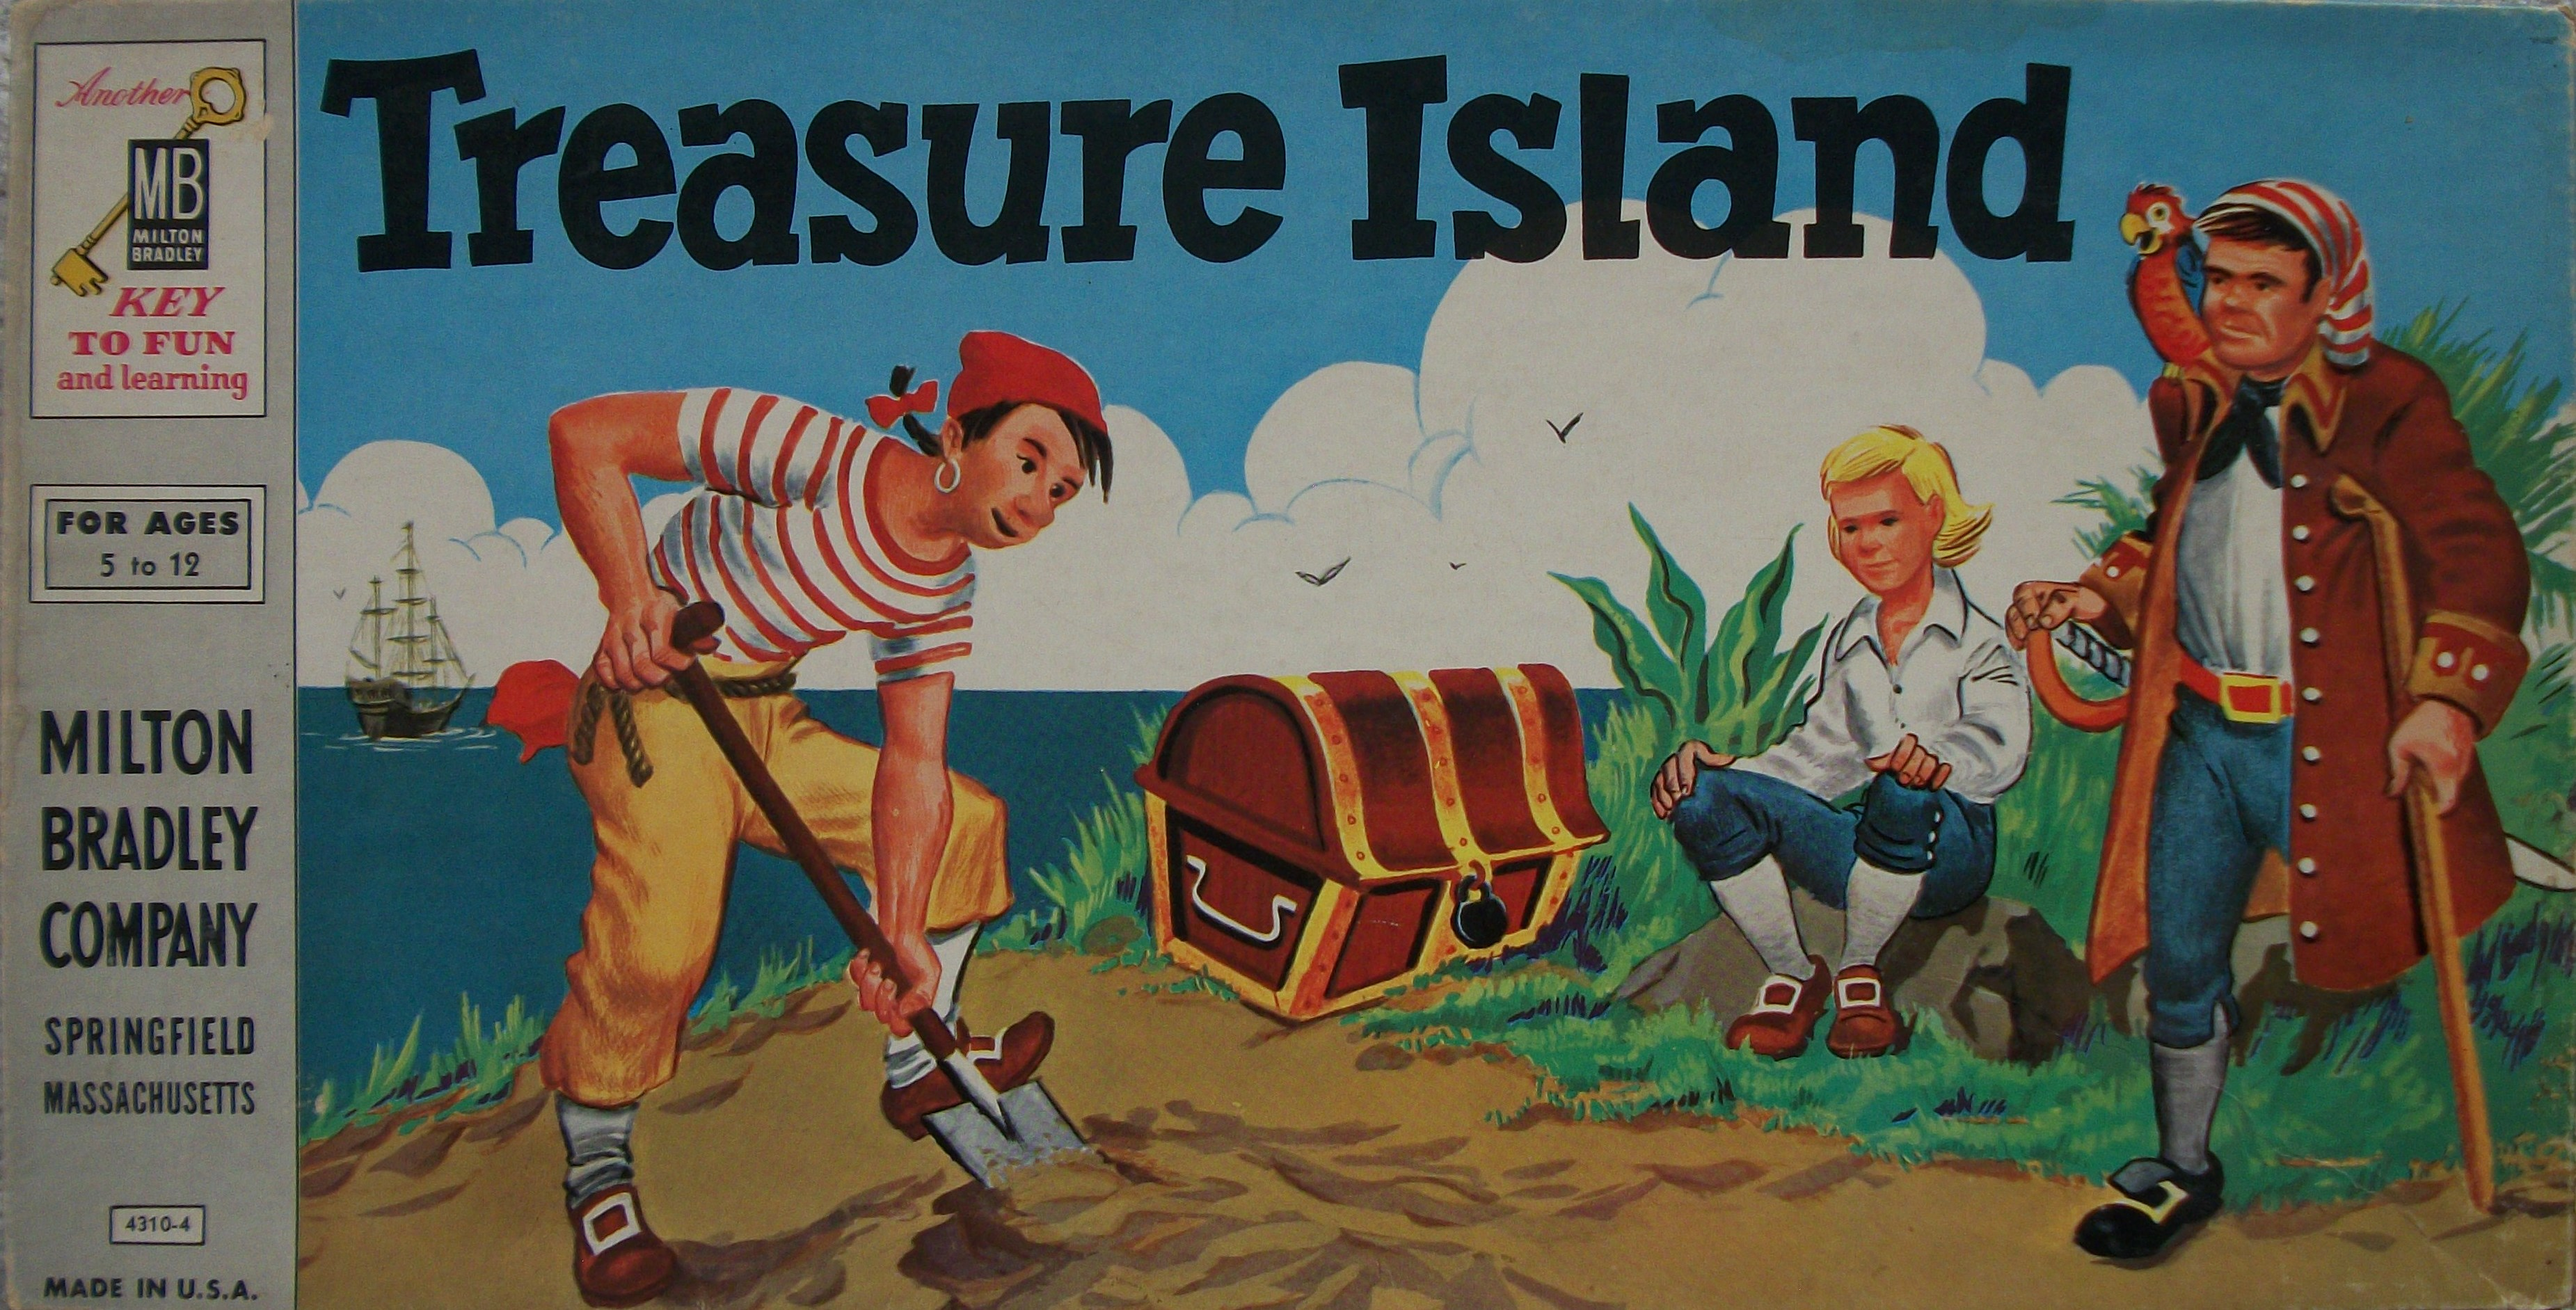 Milton Bradley's Old Board Game of Treasure Island – Mysterious ...